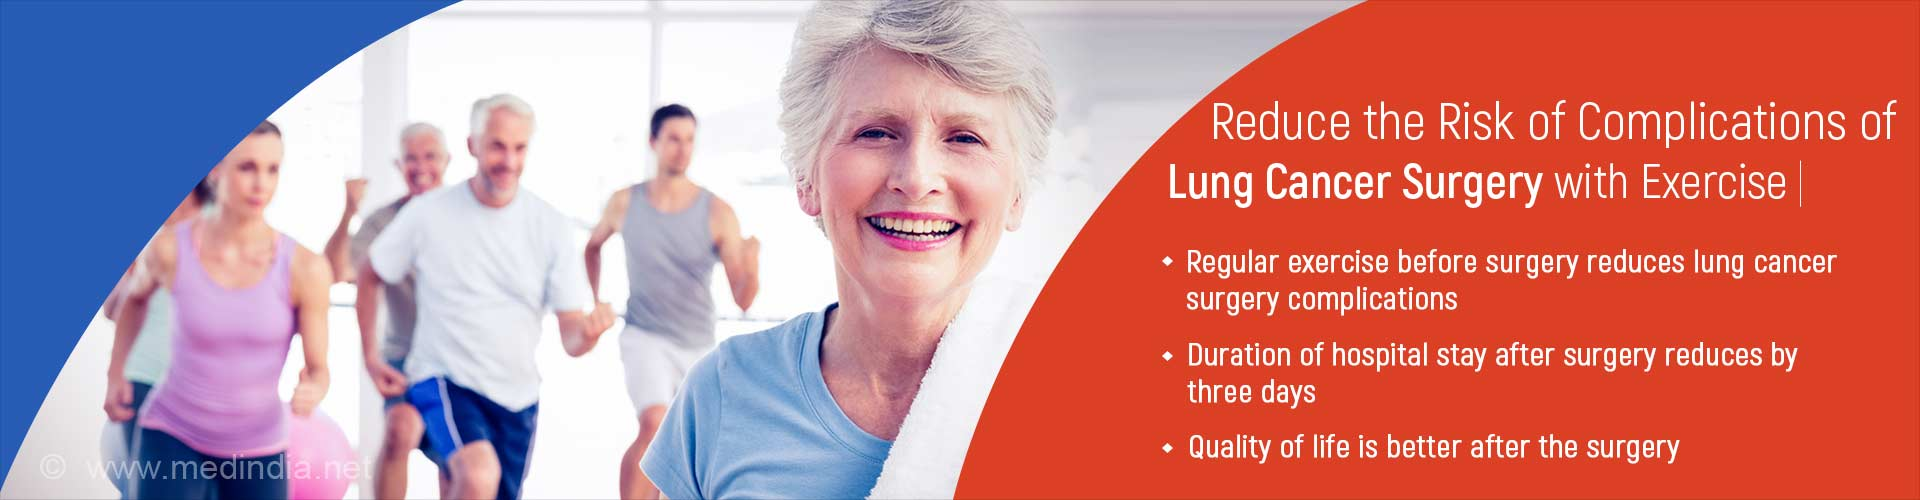 reduce the risk of complications of lung cancer surgery with exercise